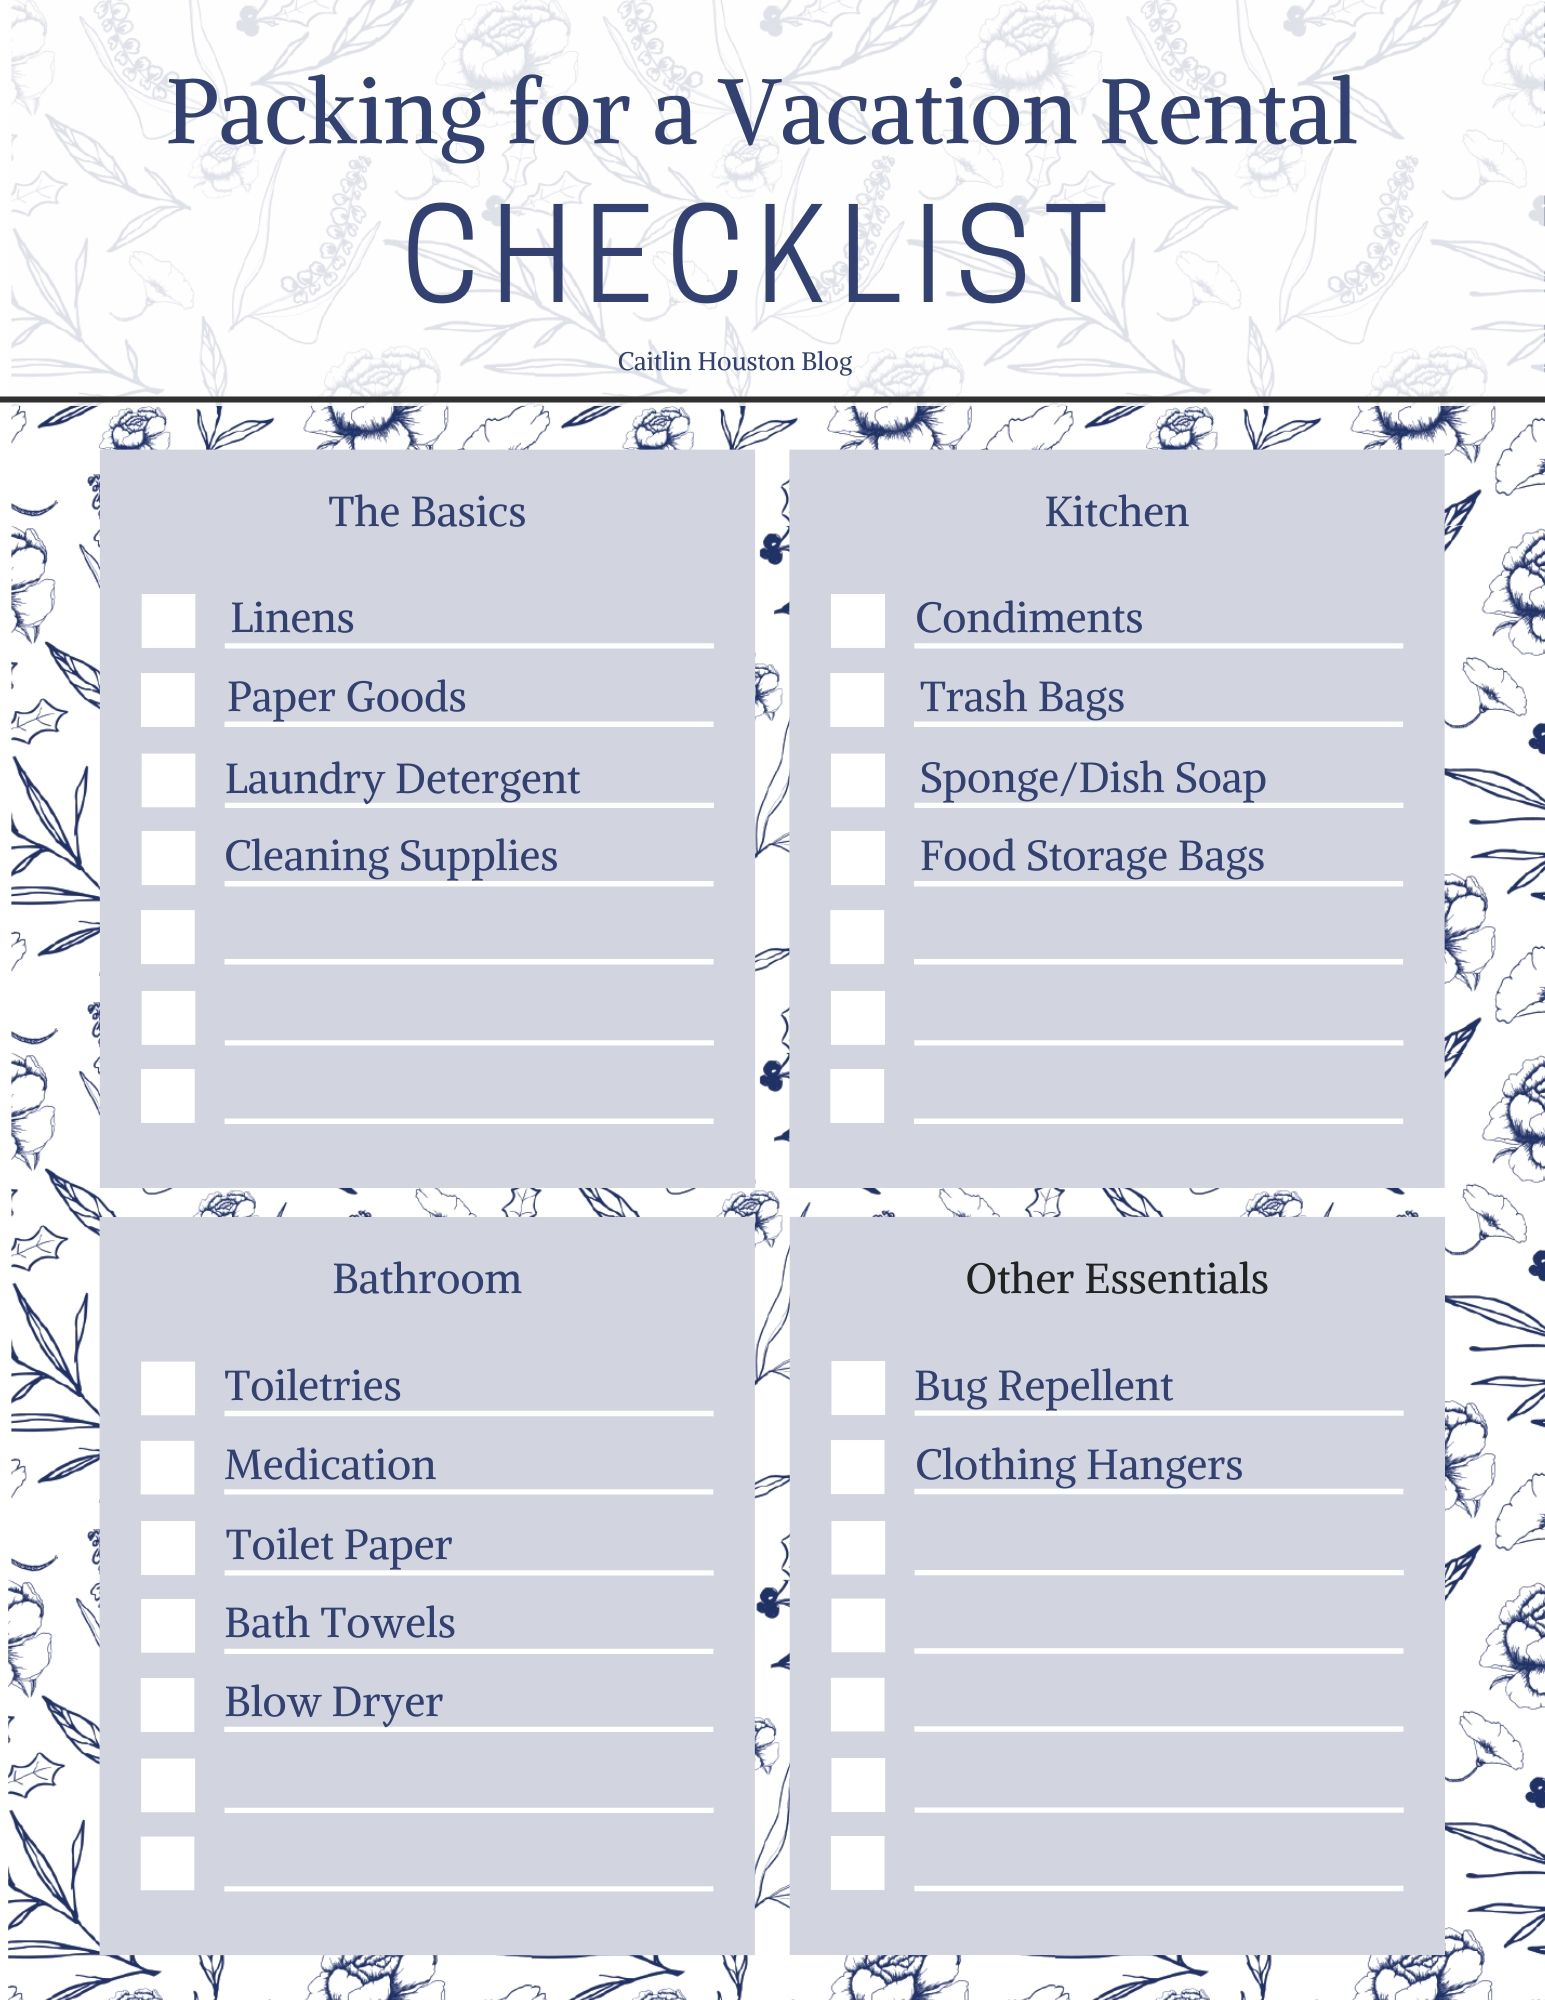 Packing for a Vacation Rental Checklist